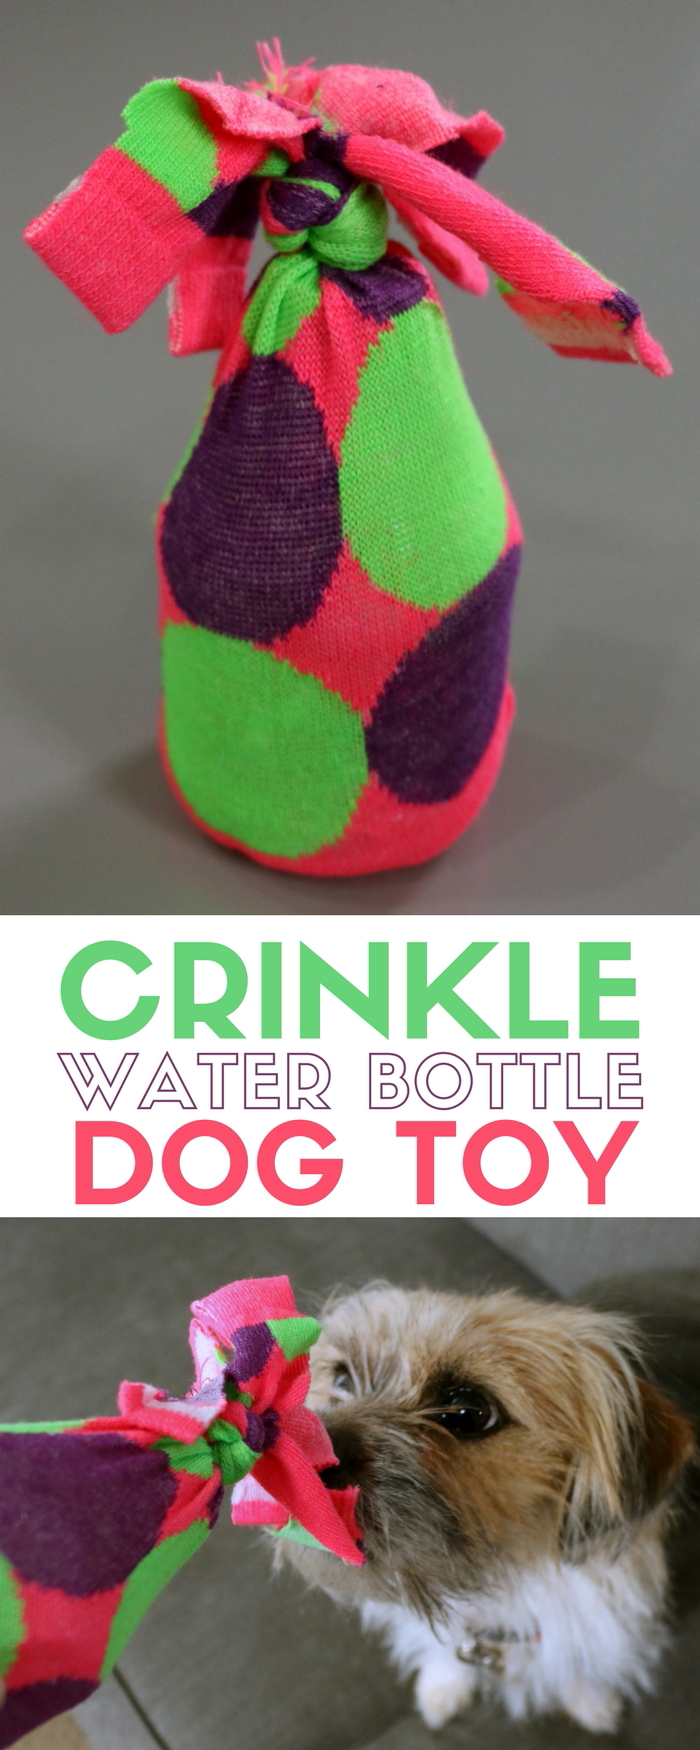 Crinkle Water Bottle Dog Toy | Purina Beneful | Homemade | Target | Feed Dogs Purina